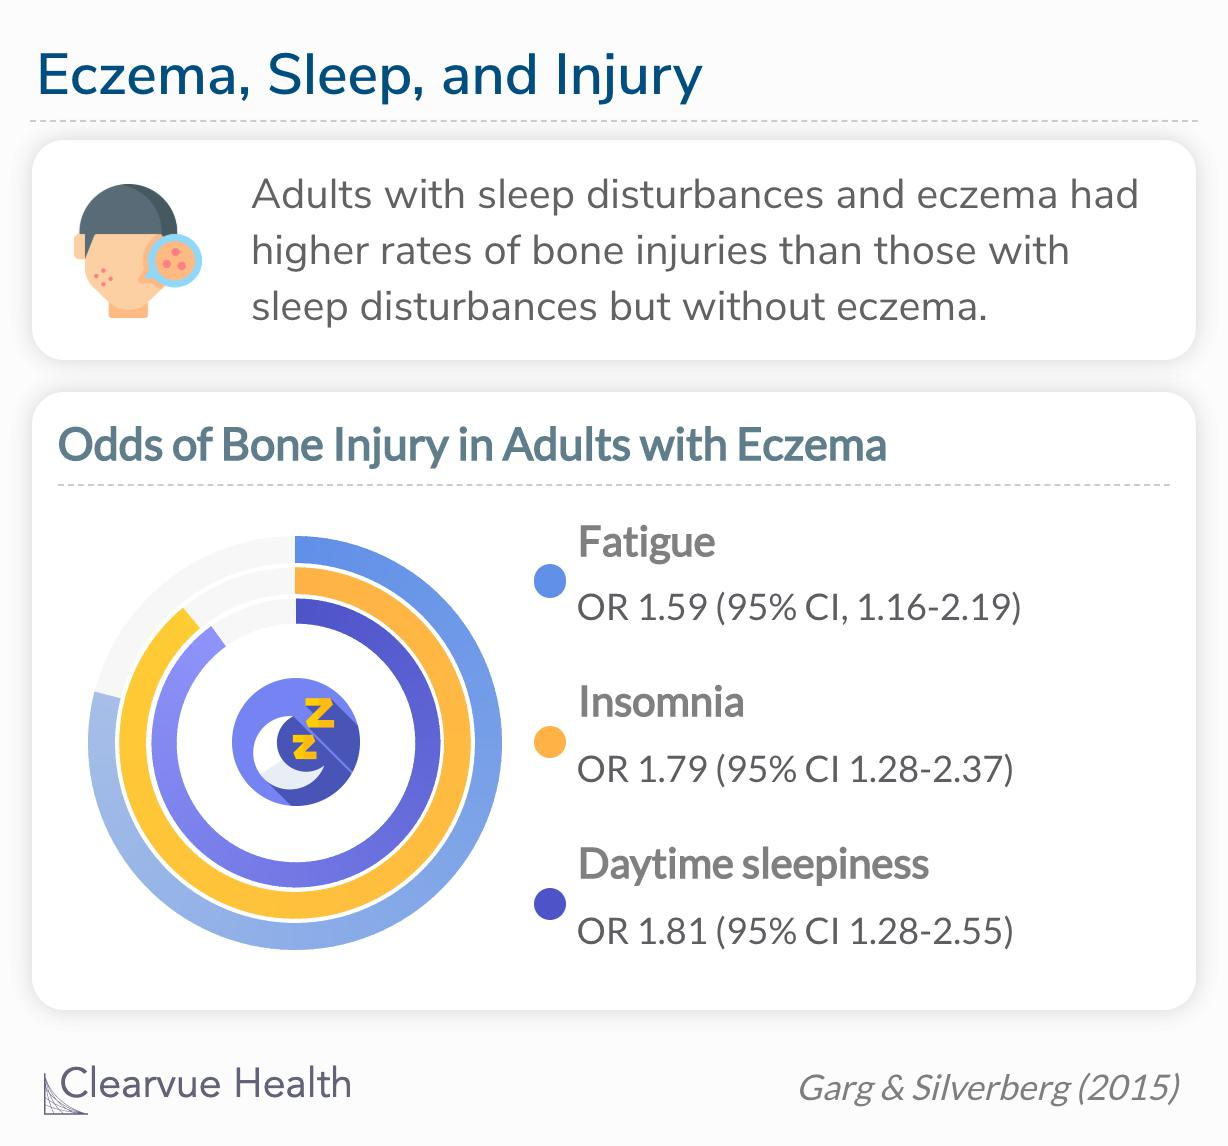 Significant 2-way interactions were observed between eczema and fatigue or sleep symptoms as predictors of FBJI